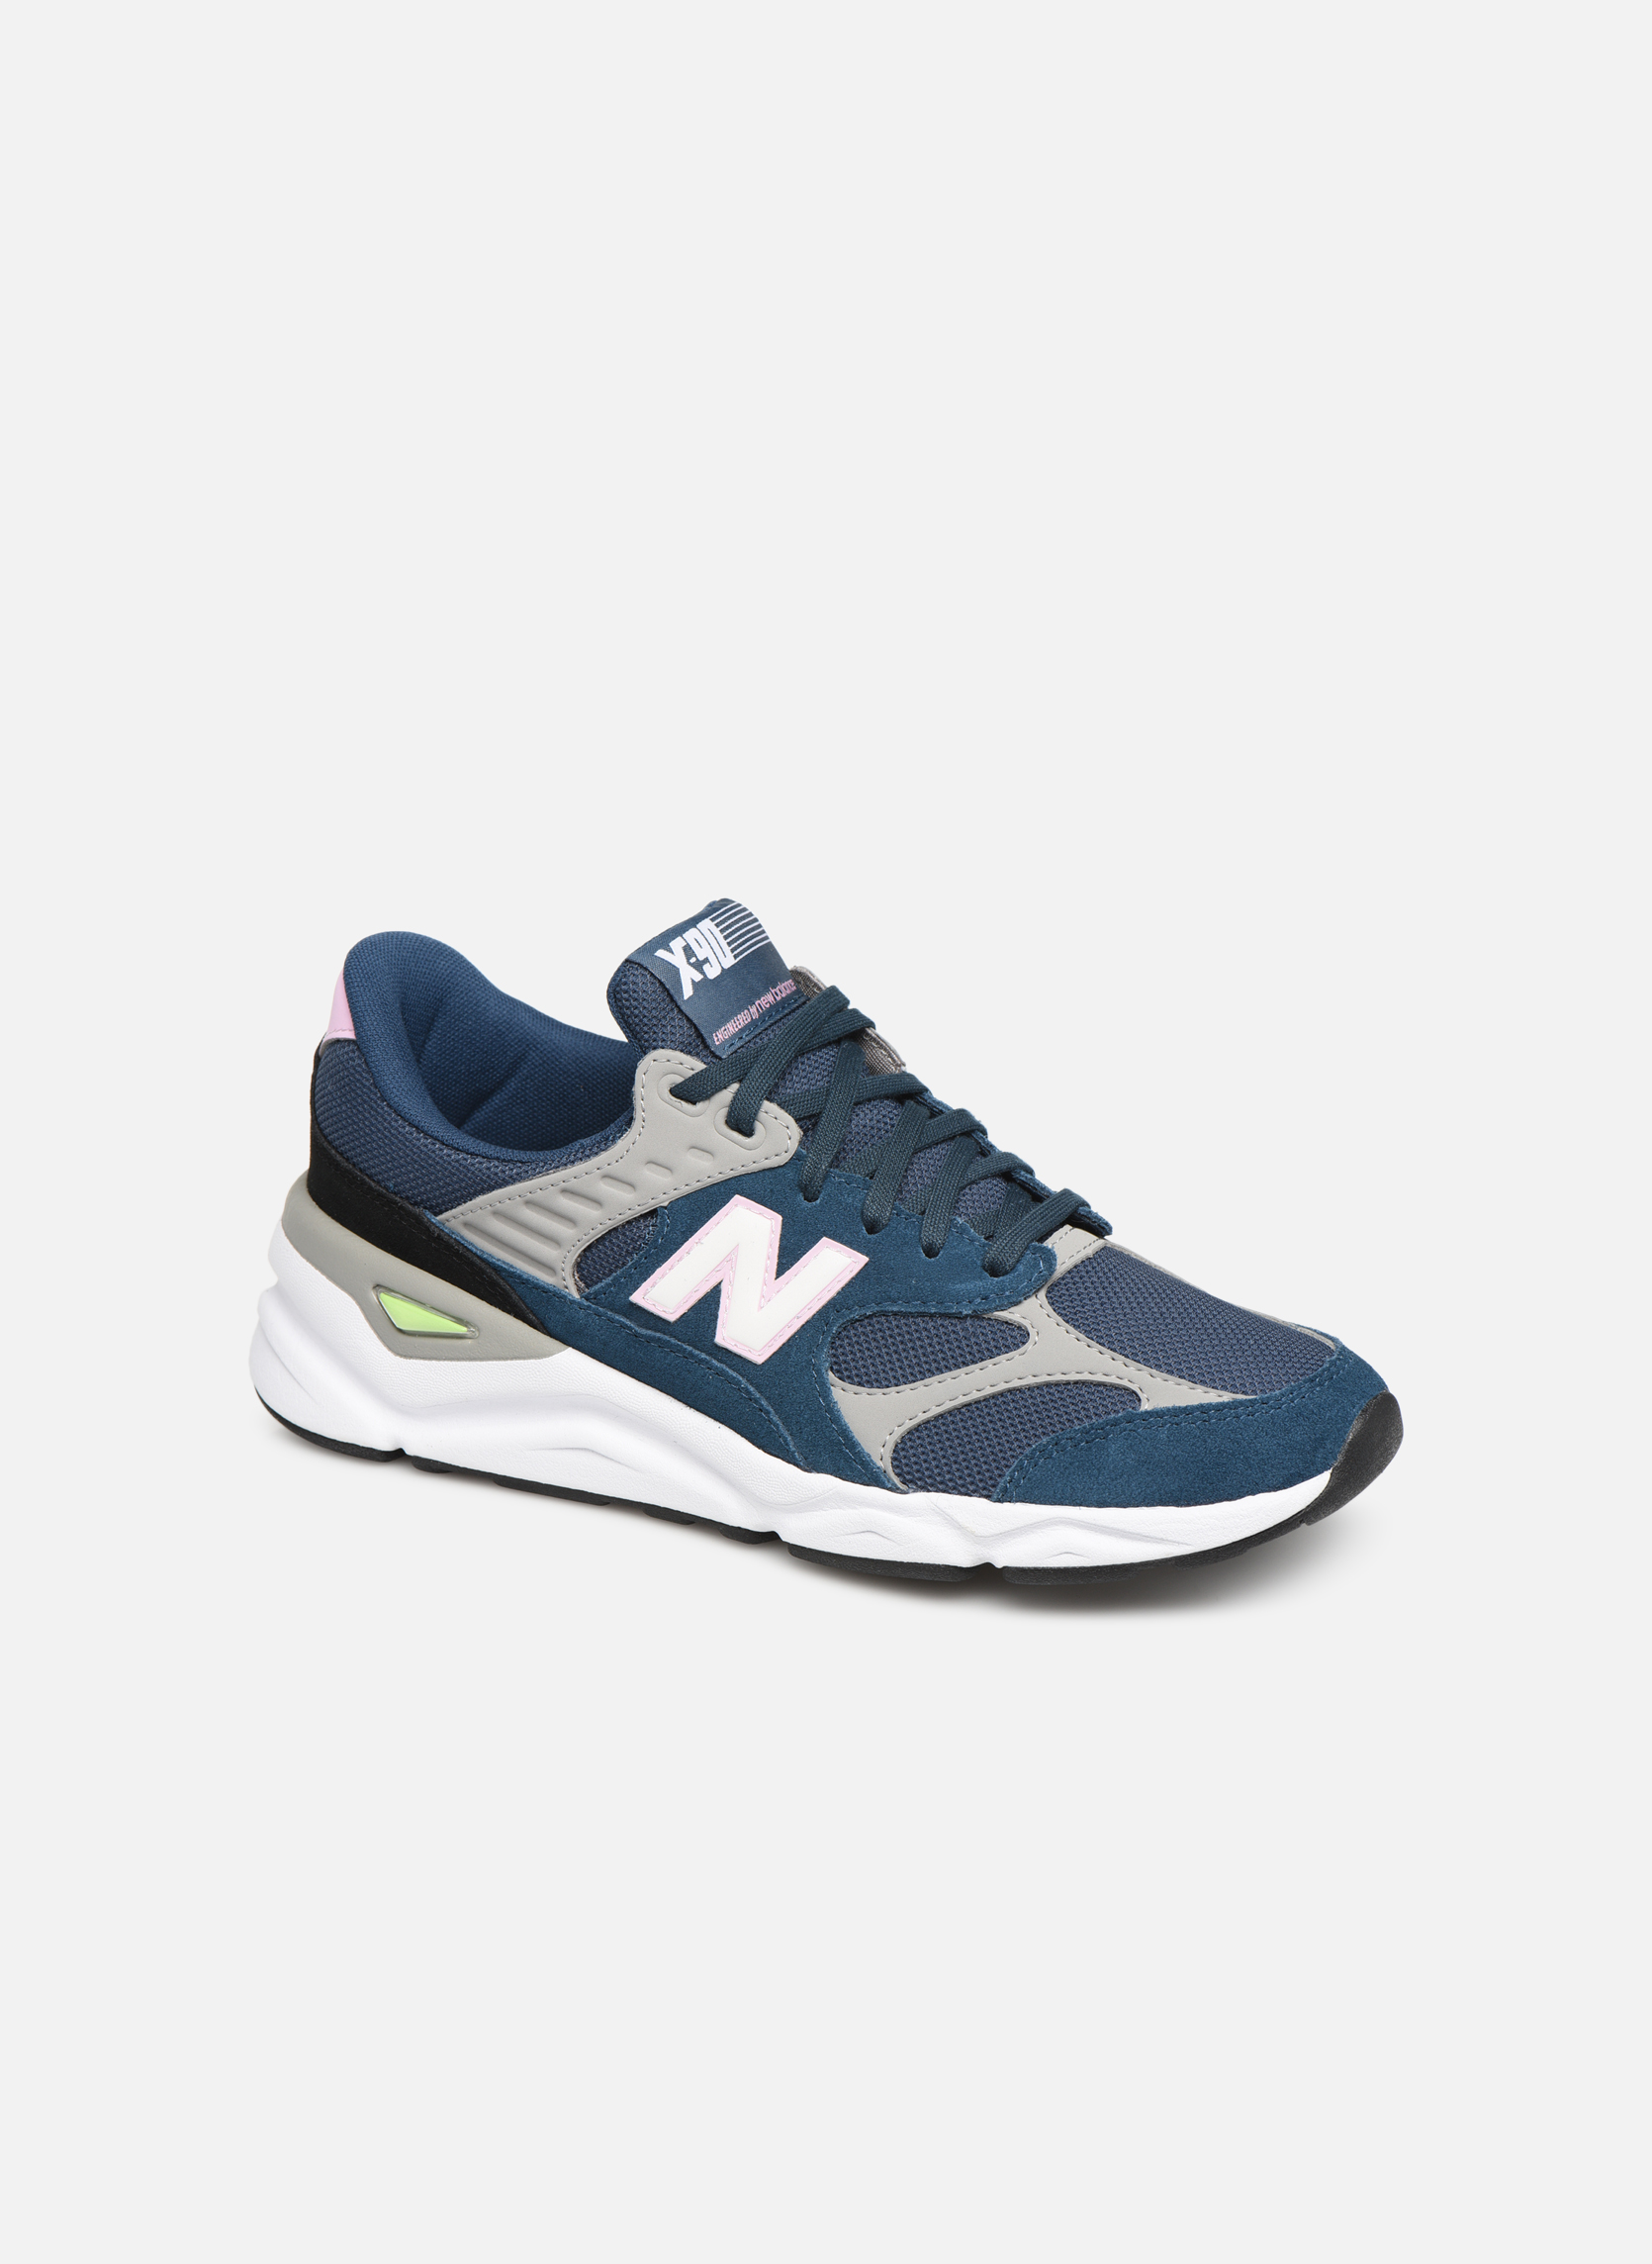 Sneakers MX-90 by New Balance